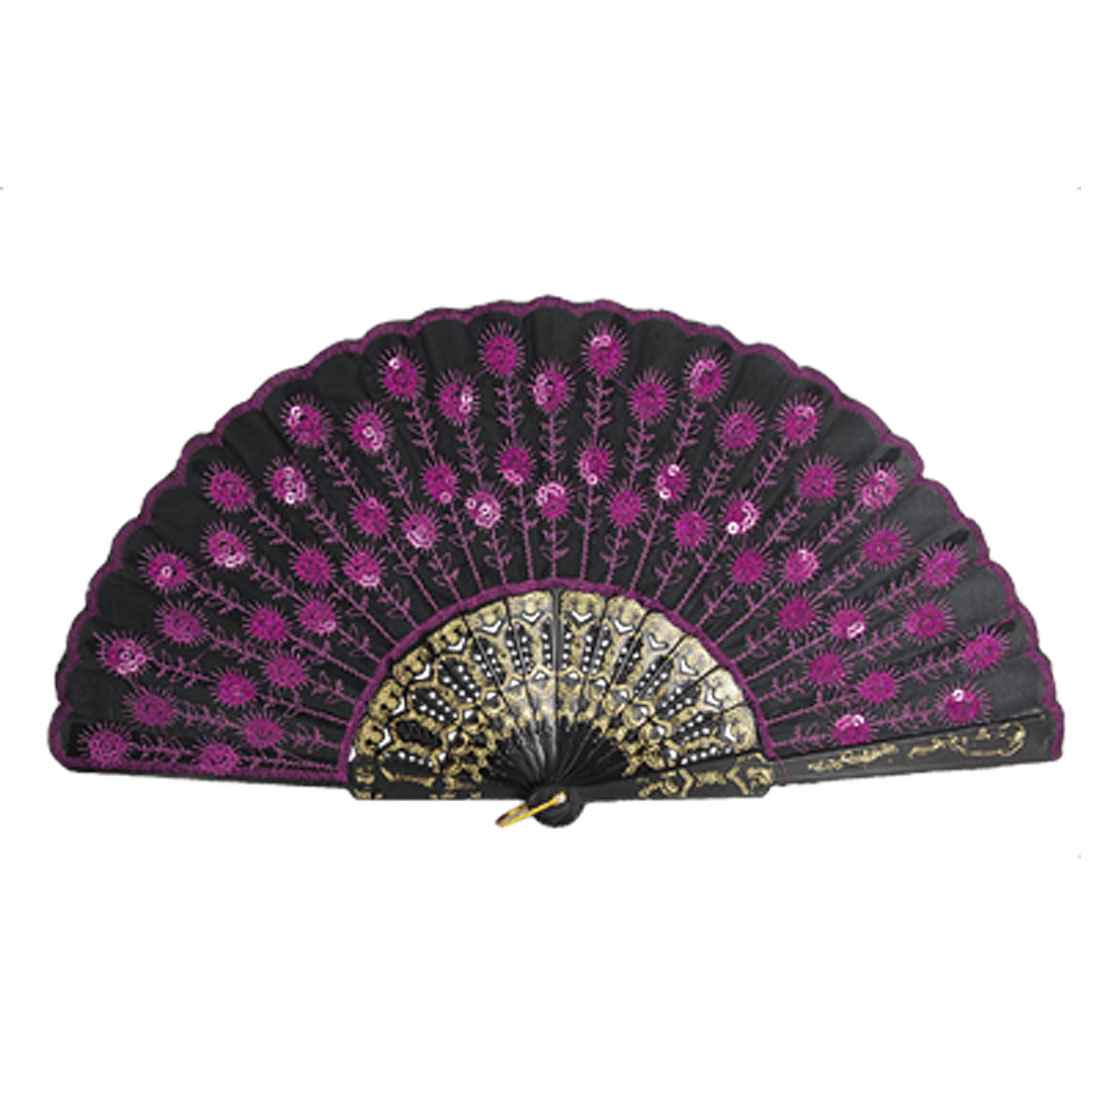 Paillette Accent Organza Cover Plastic Ribs Dance Foldable Hand Fan